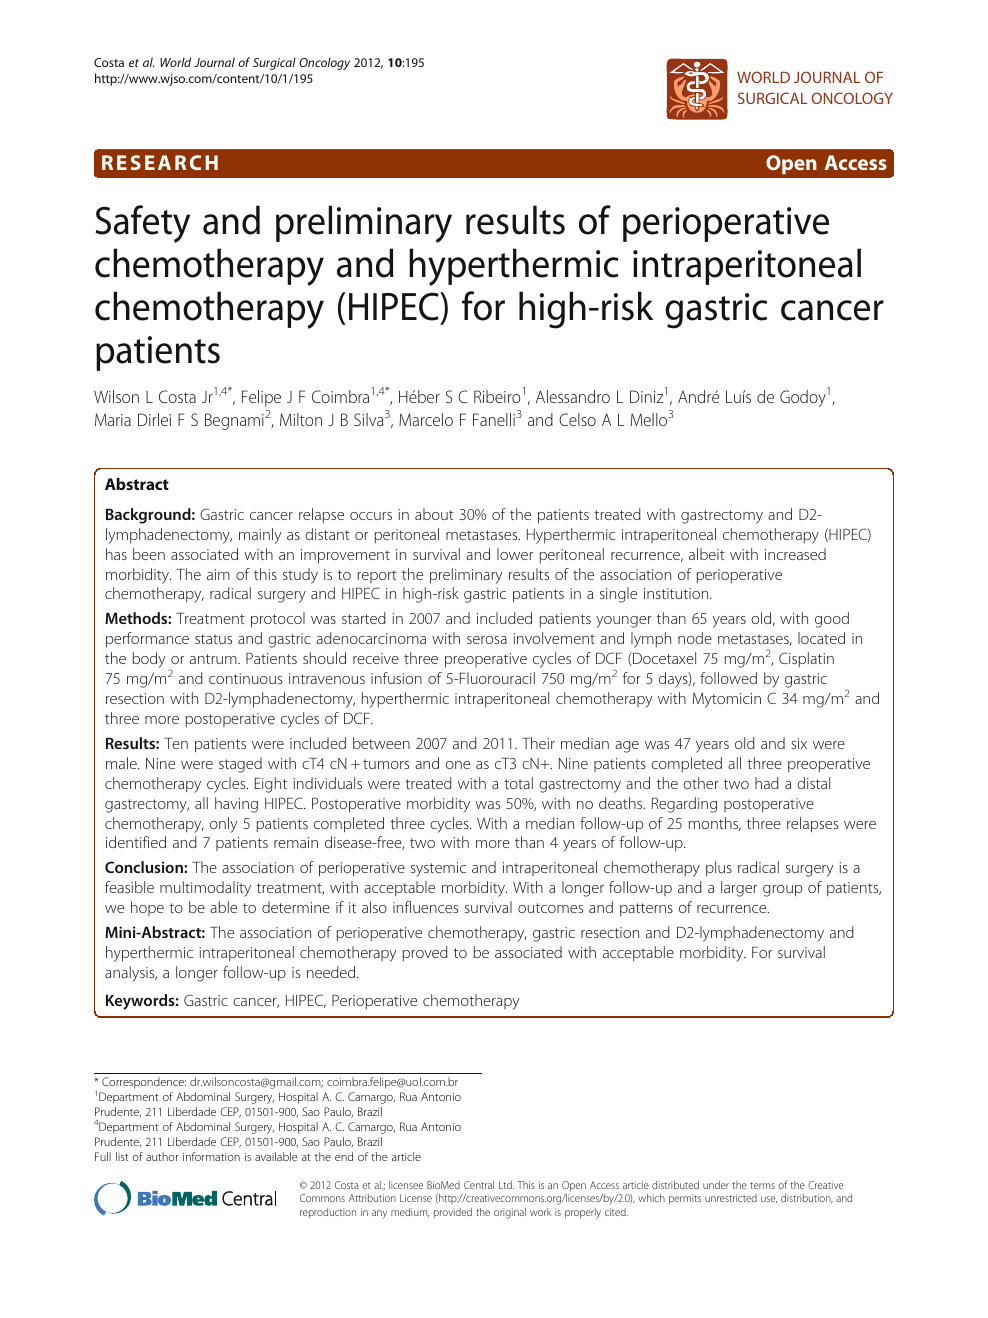 Safety And Preliminary Results Of Perioperative Chemotherapy And Hyperthermic Intraperitoneal Chemotherapy Hipec For High Risk Gastric Cancer Patients Topic Of Research Paper In Clinical Medicine Download Scholarly Article Pdf And Read For